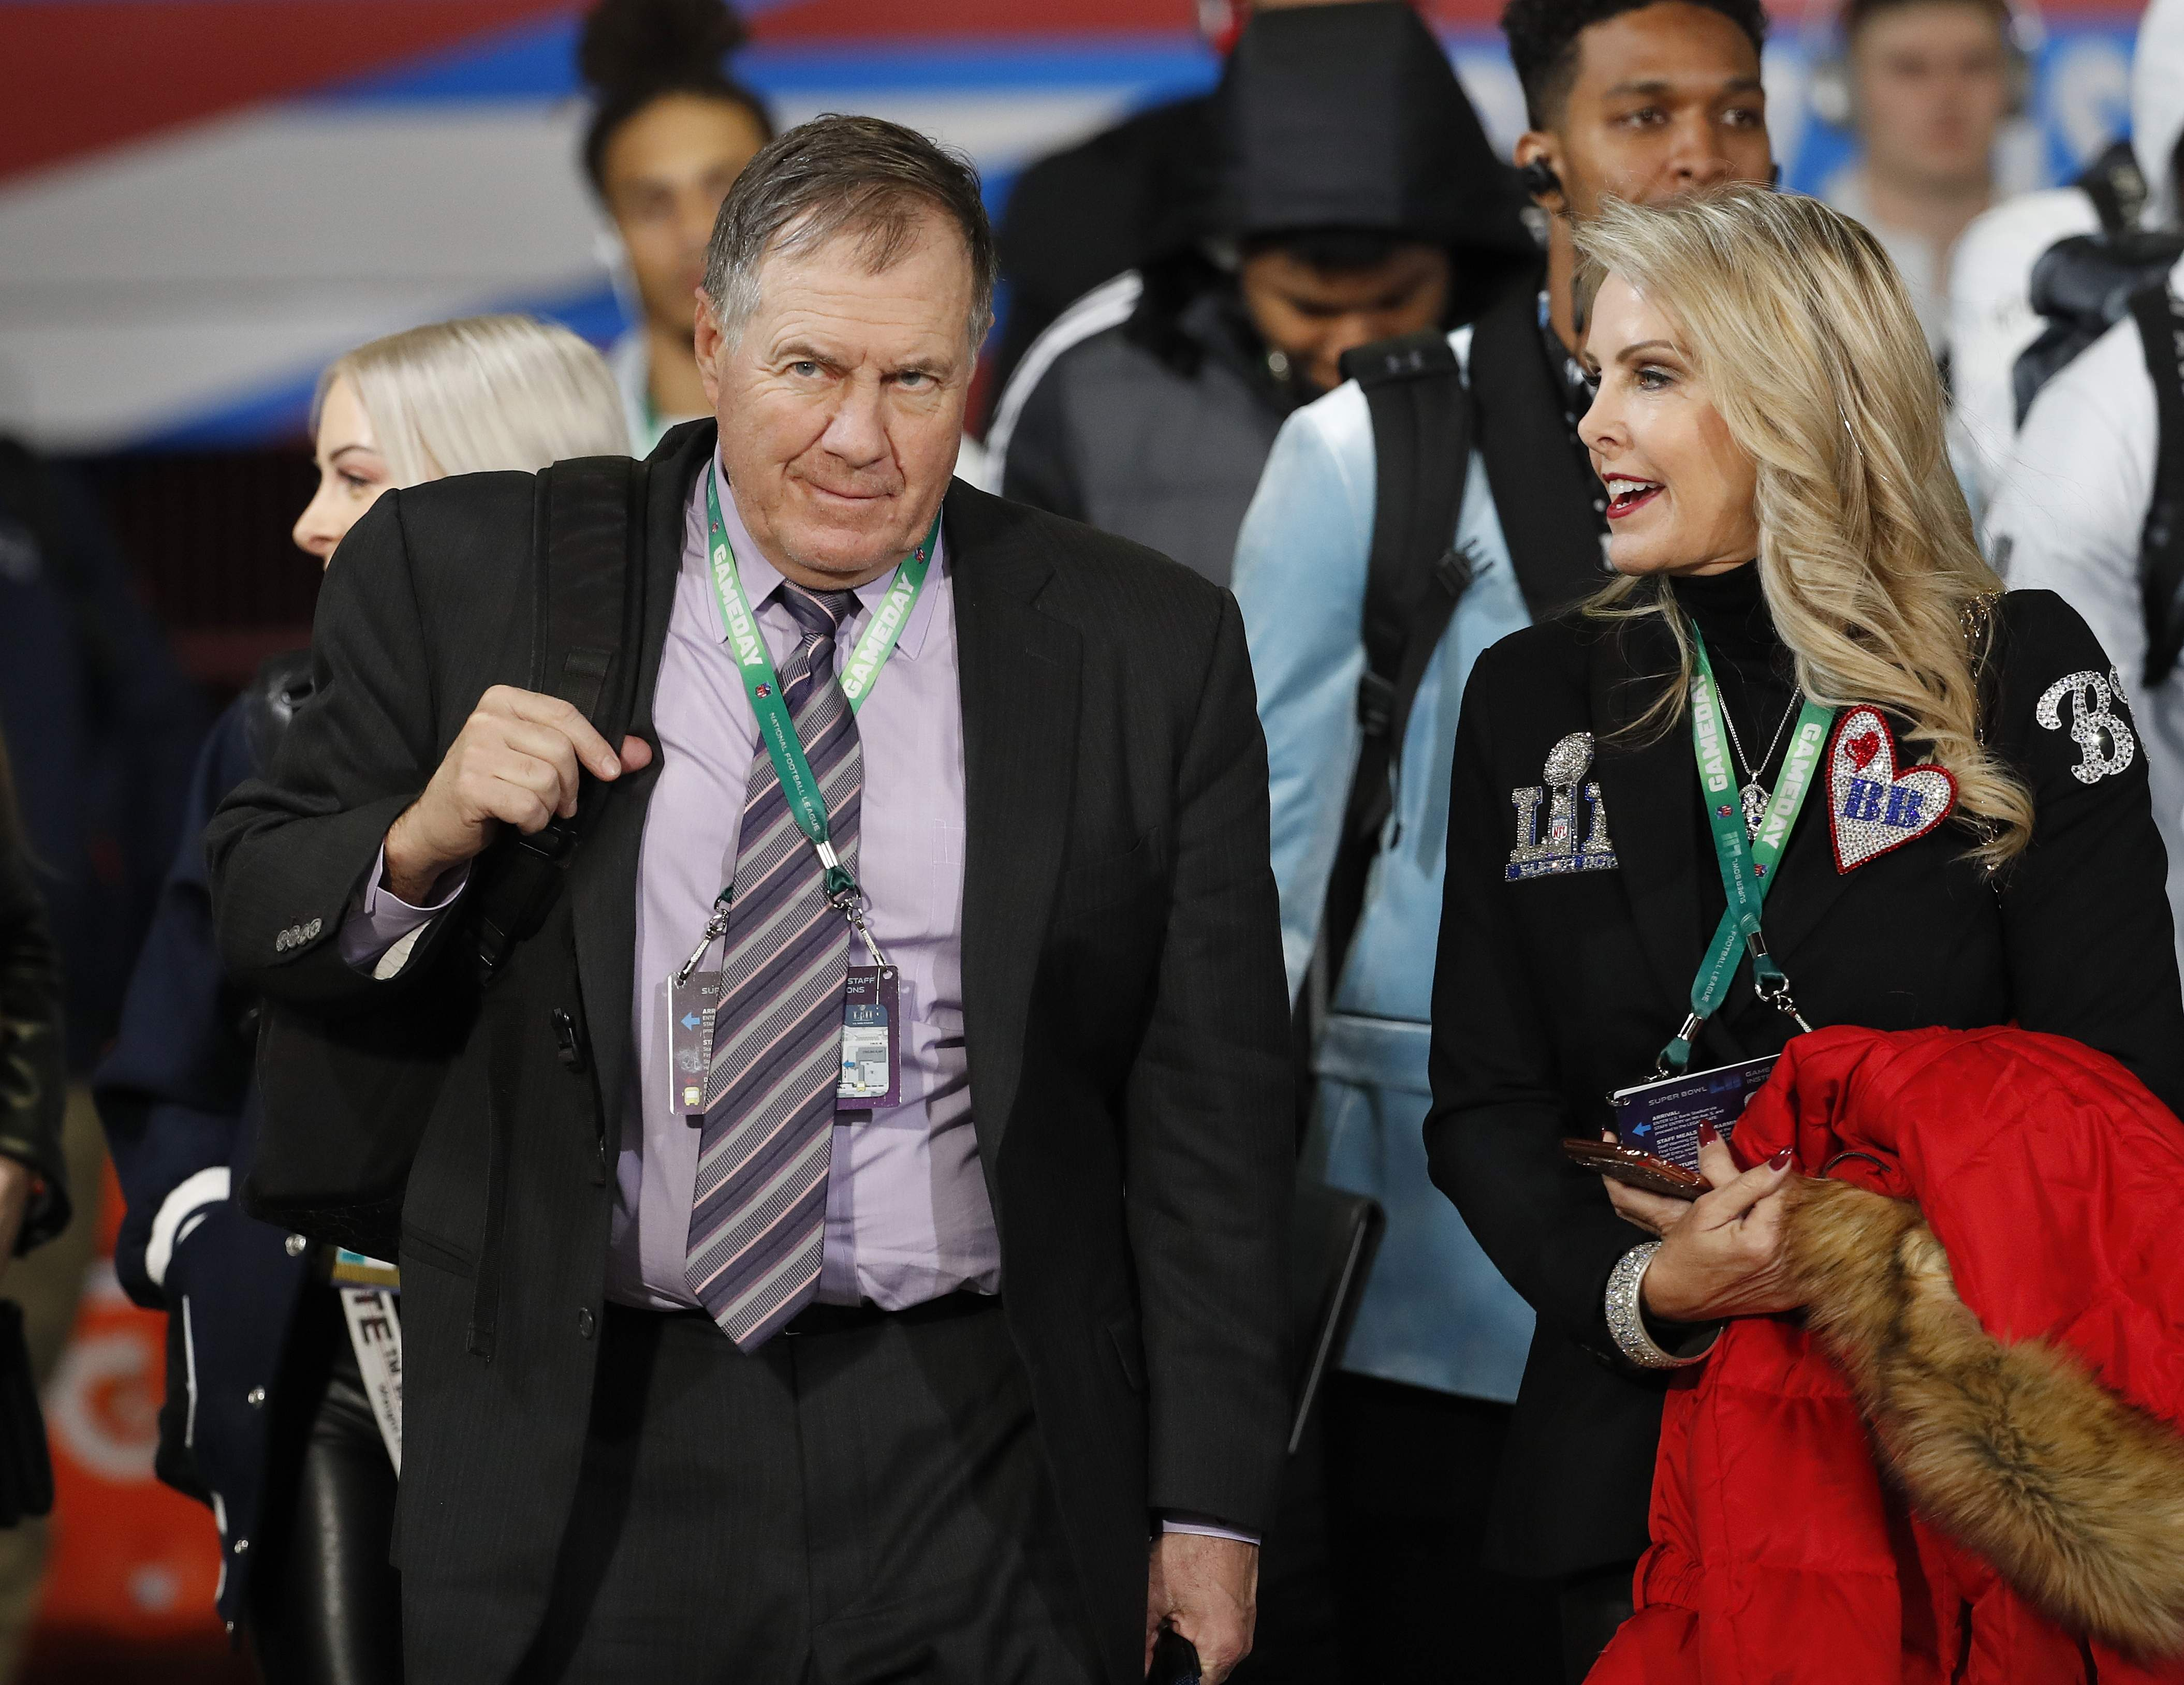 New England Patriots head coach Bill Belichick, left, and girlfriend Linda Holliday arrive before the NFL Super Bowl 52 football game against the Philadelphia Eagles Sunday, Feb. 4, 2018, in Minneapolis. (AP Photo/Matt York)